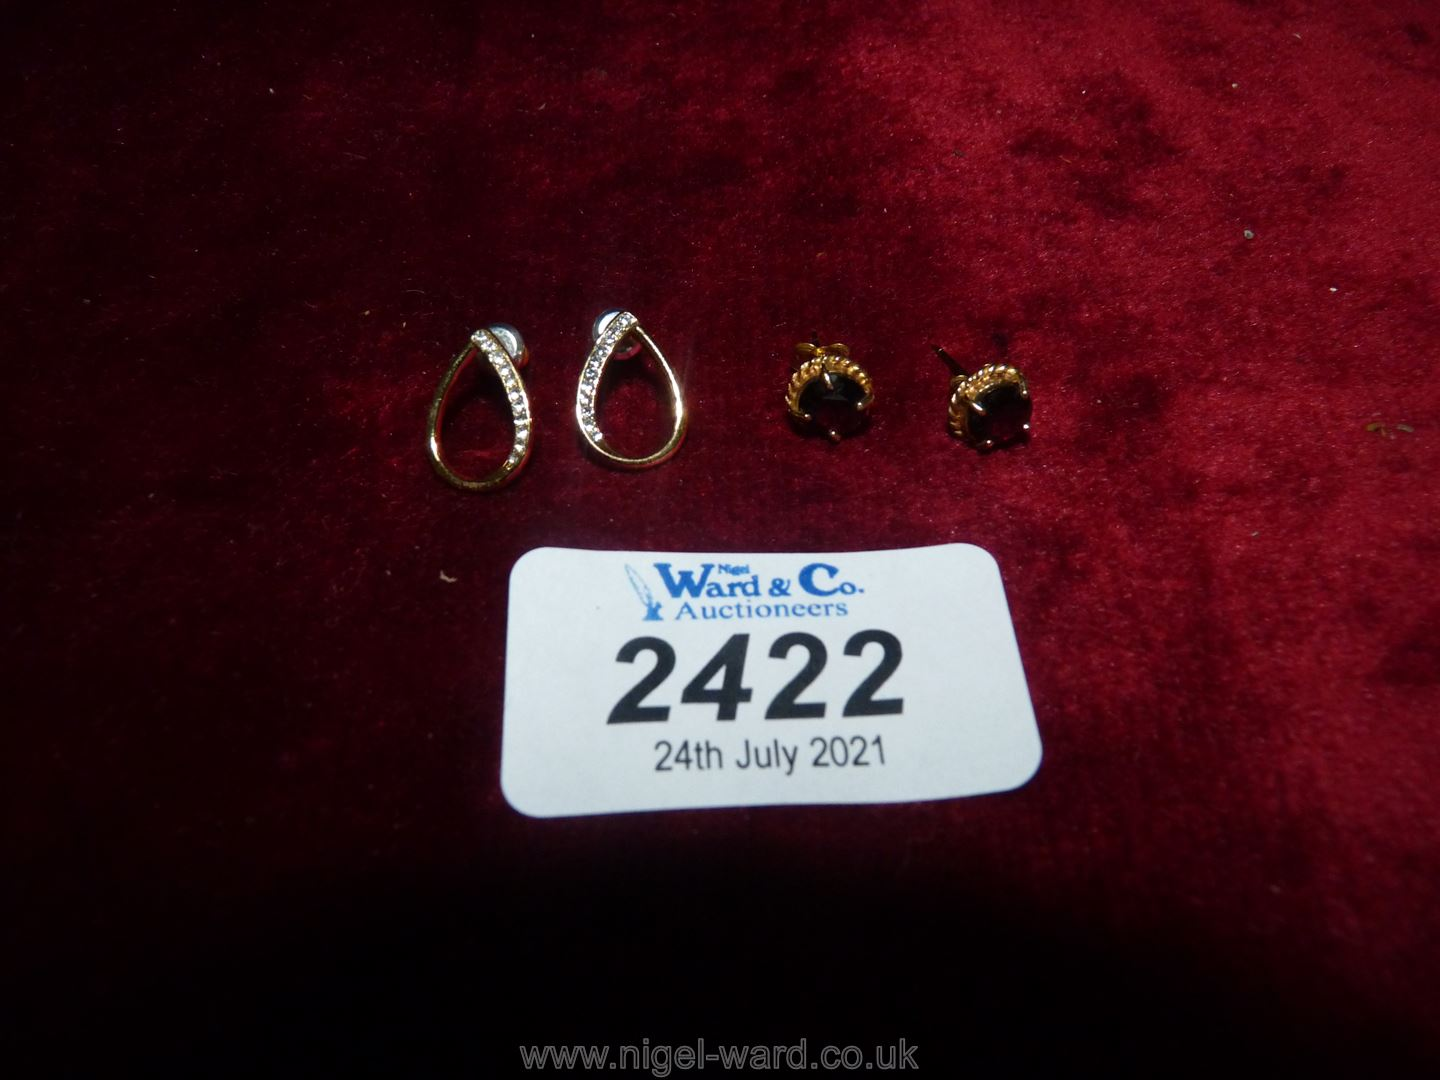 Two pairs of yellow metal ear-rings one set with red stone the other with white chips.